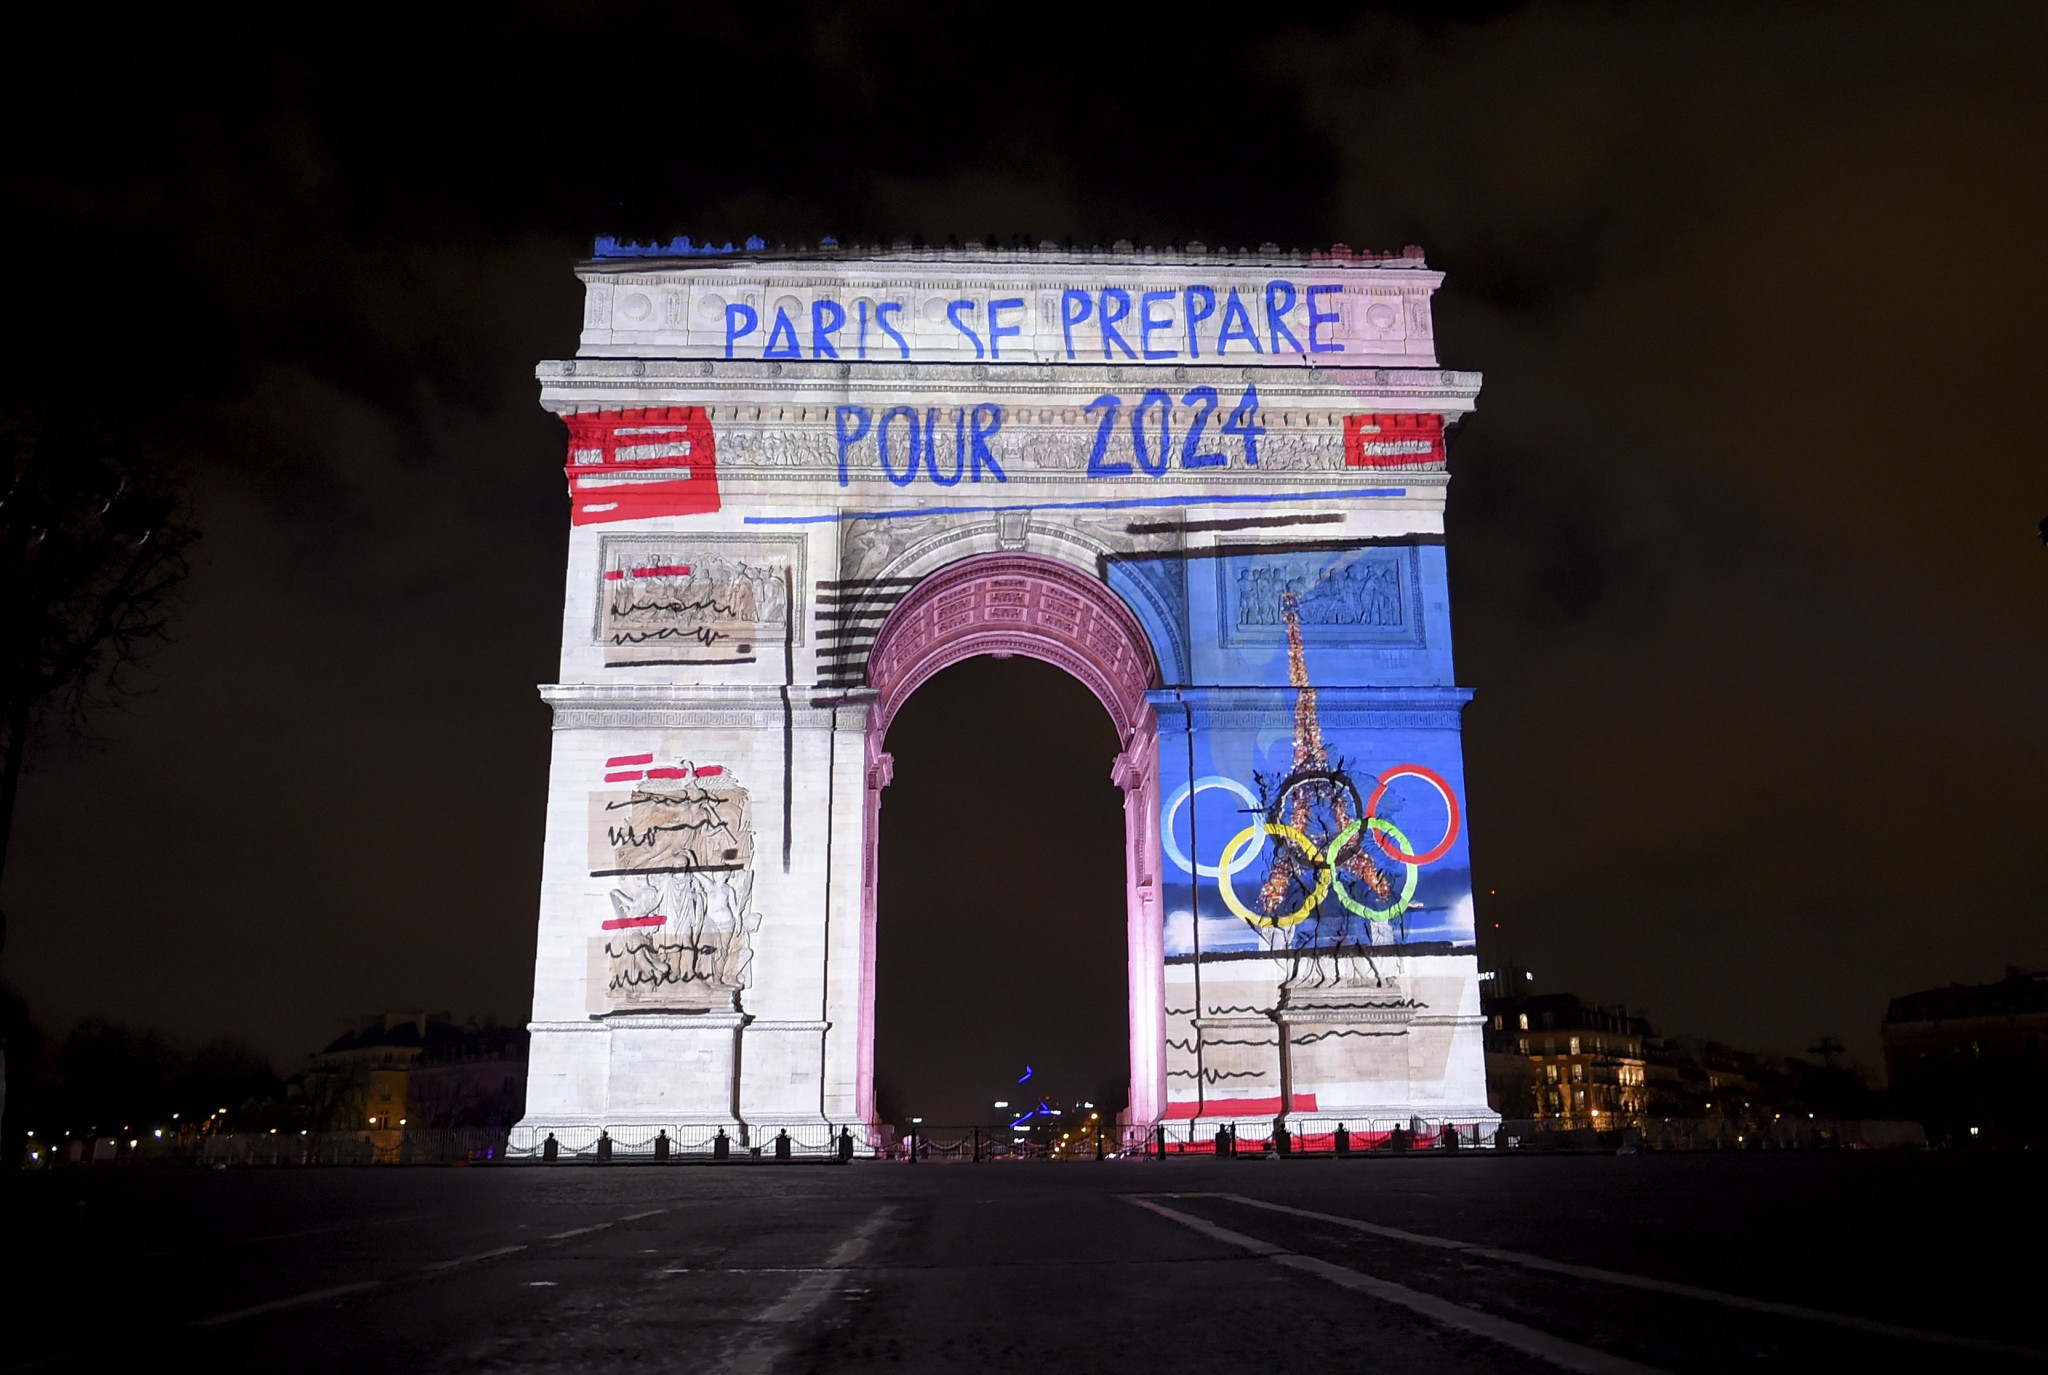 Speaking of ticket sales, both Los Angeles and Paris indicated they were looking to raise more than $1 billion in ticket sales from the 2024 Games ©Getty Images